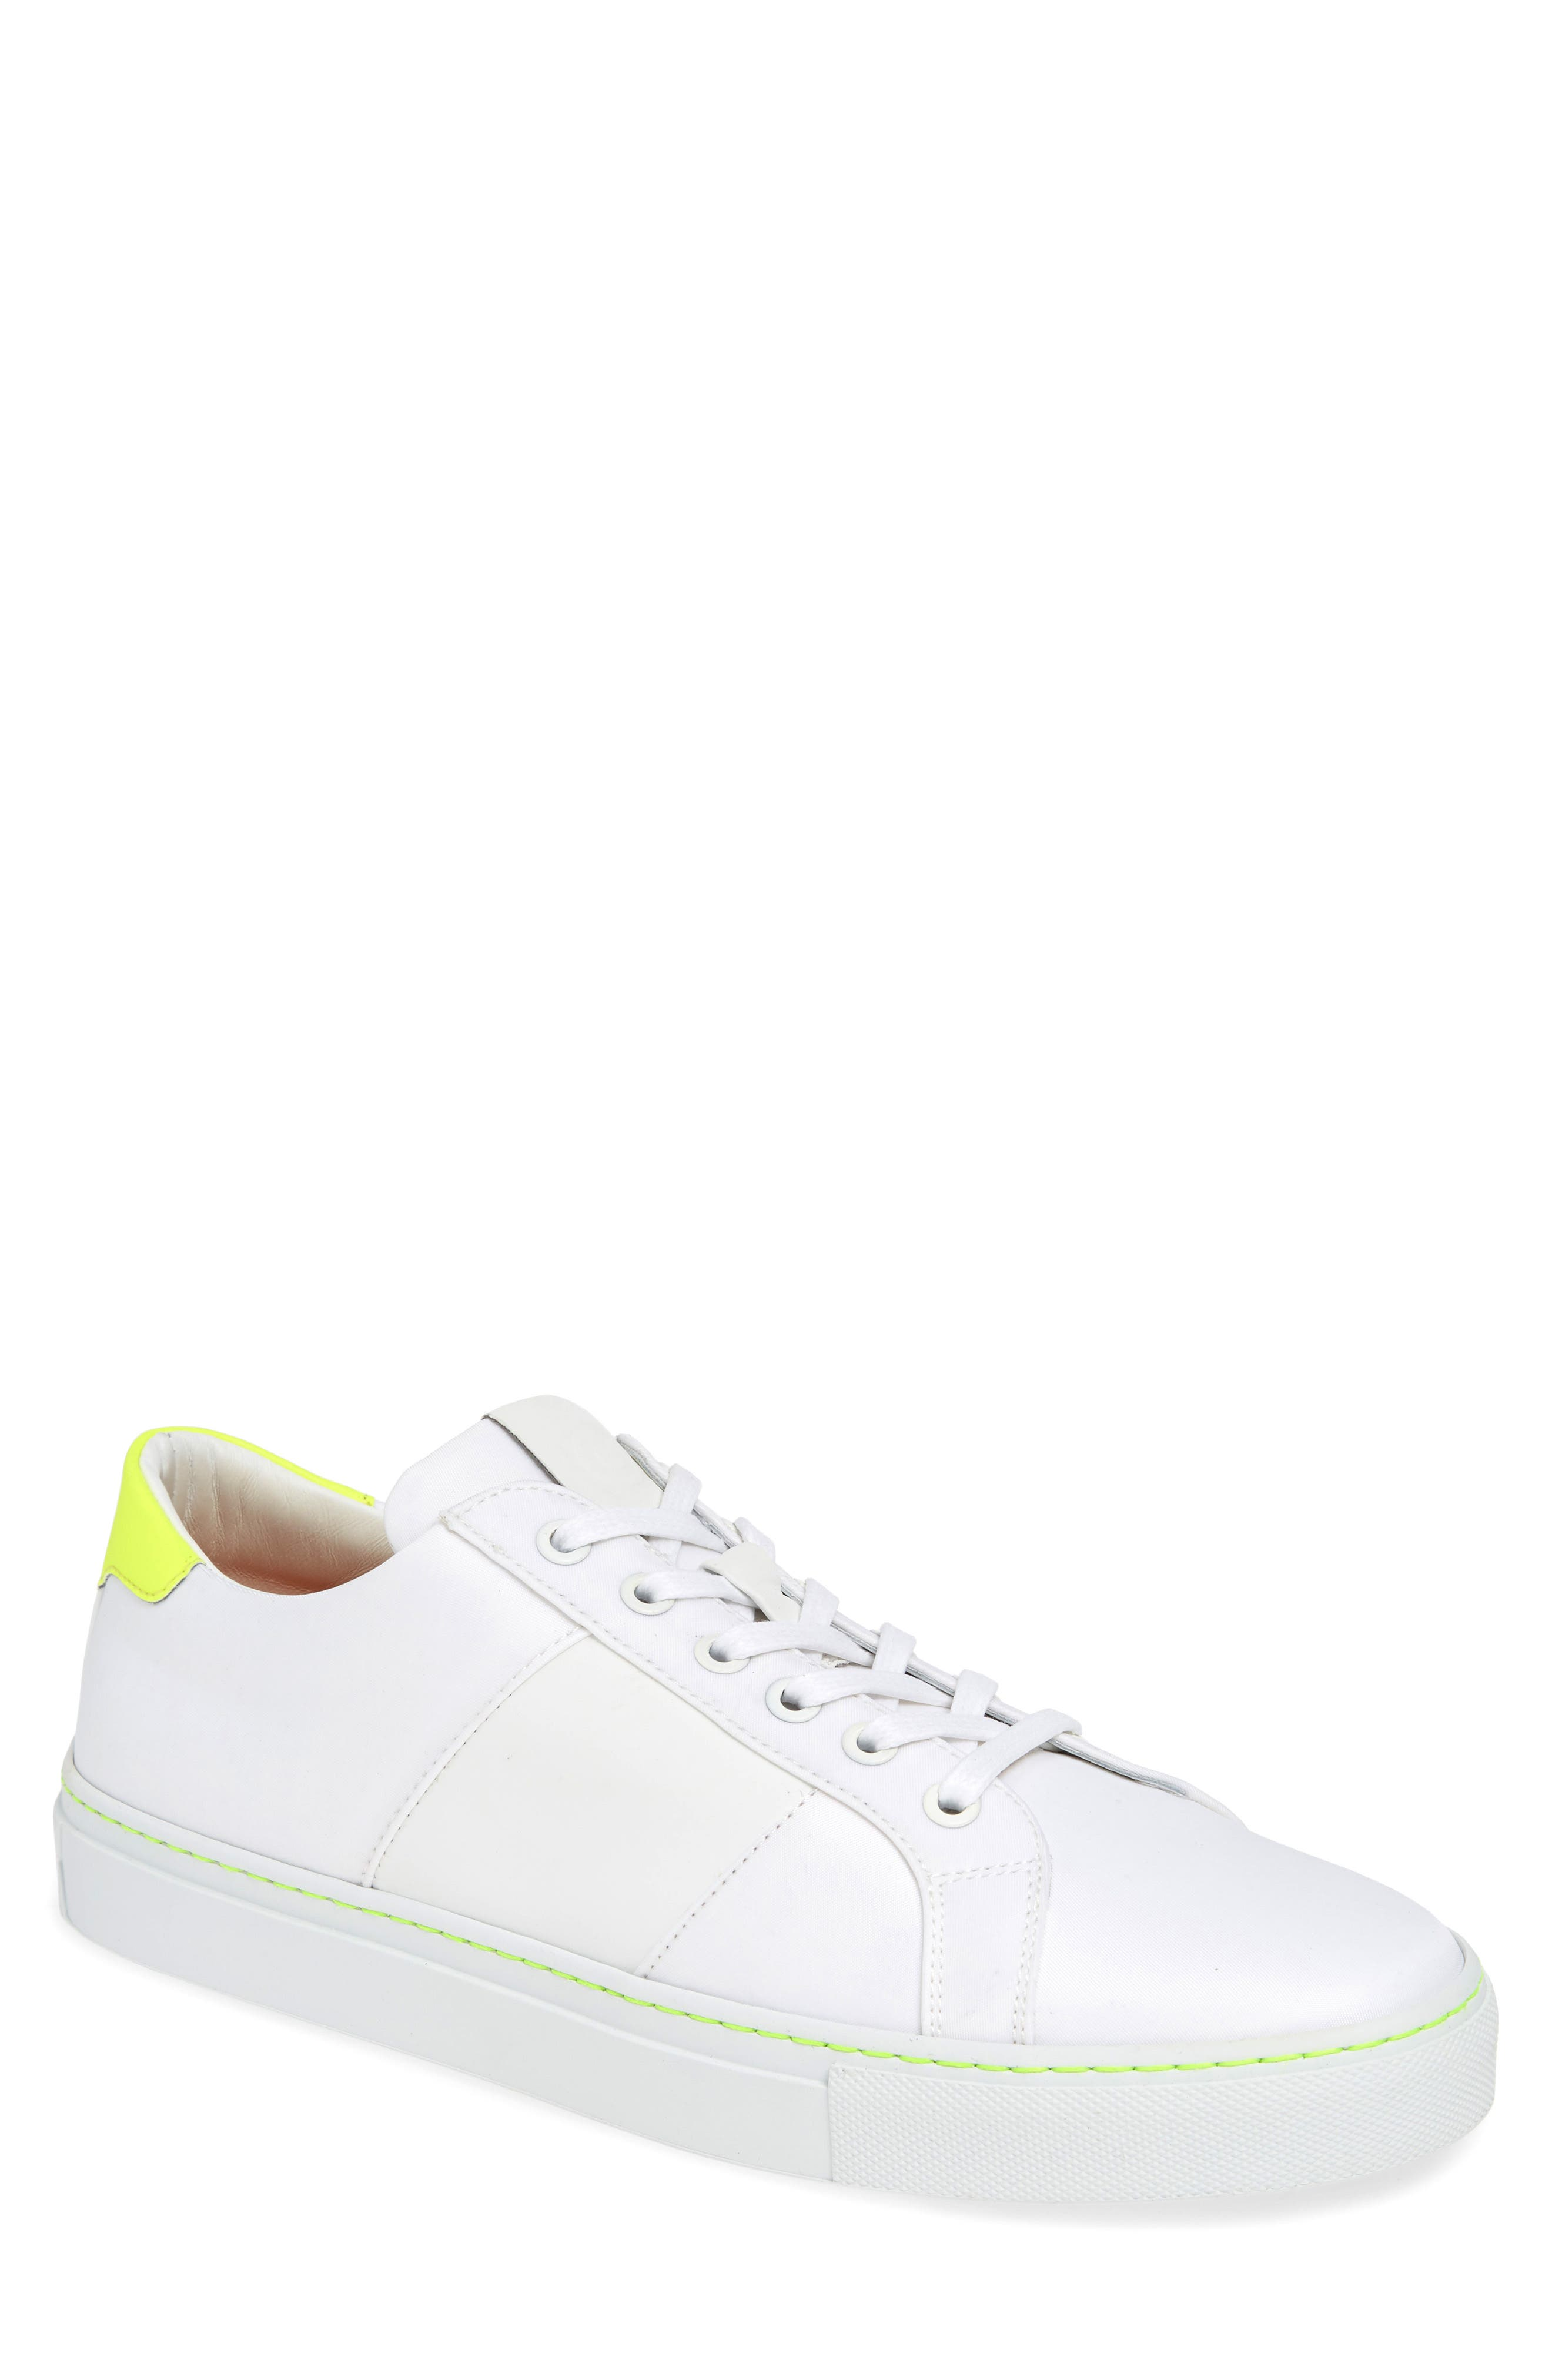 Royale Ripstop Sneaker, Main, color, WHITE/ NEON